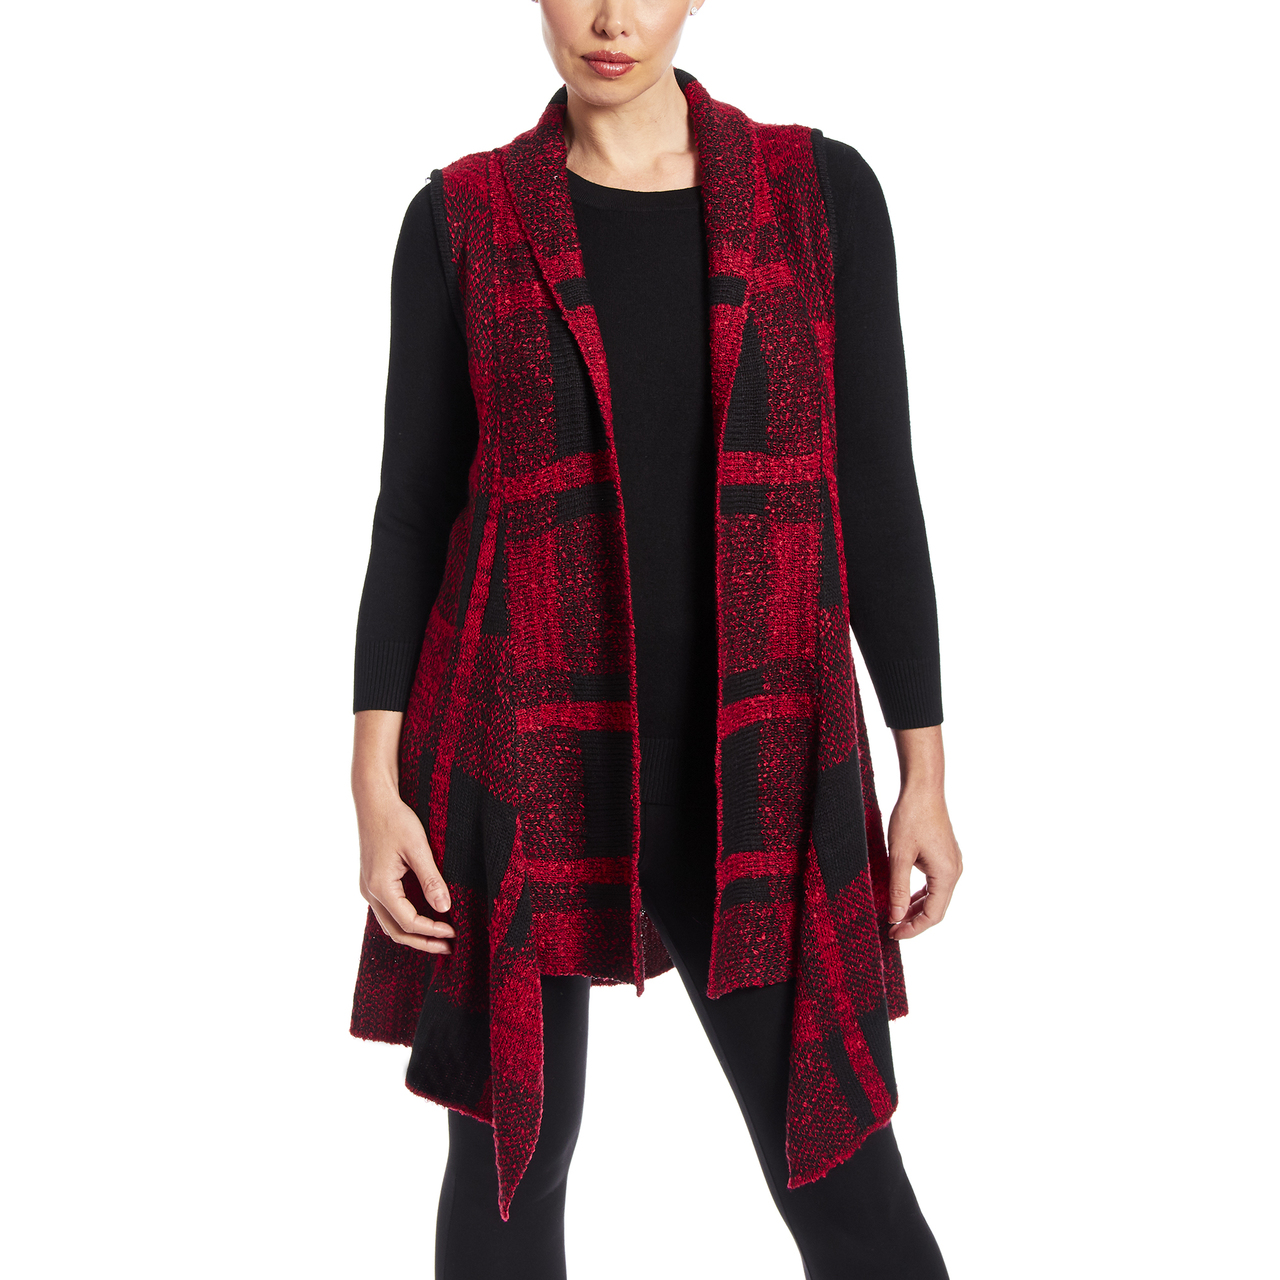 Plaid Sharkbite Sleeveless Vest In Black and Red